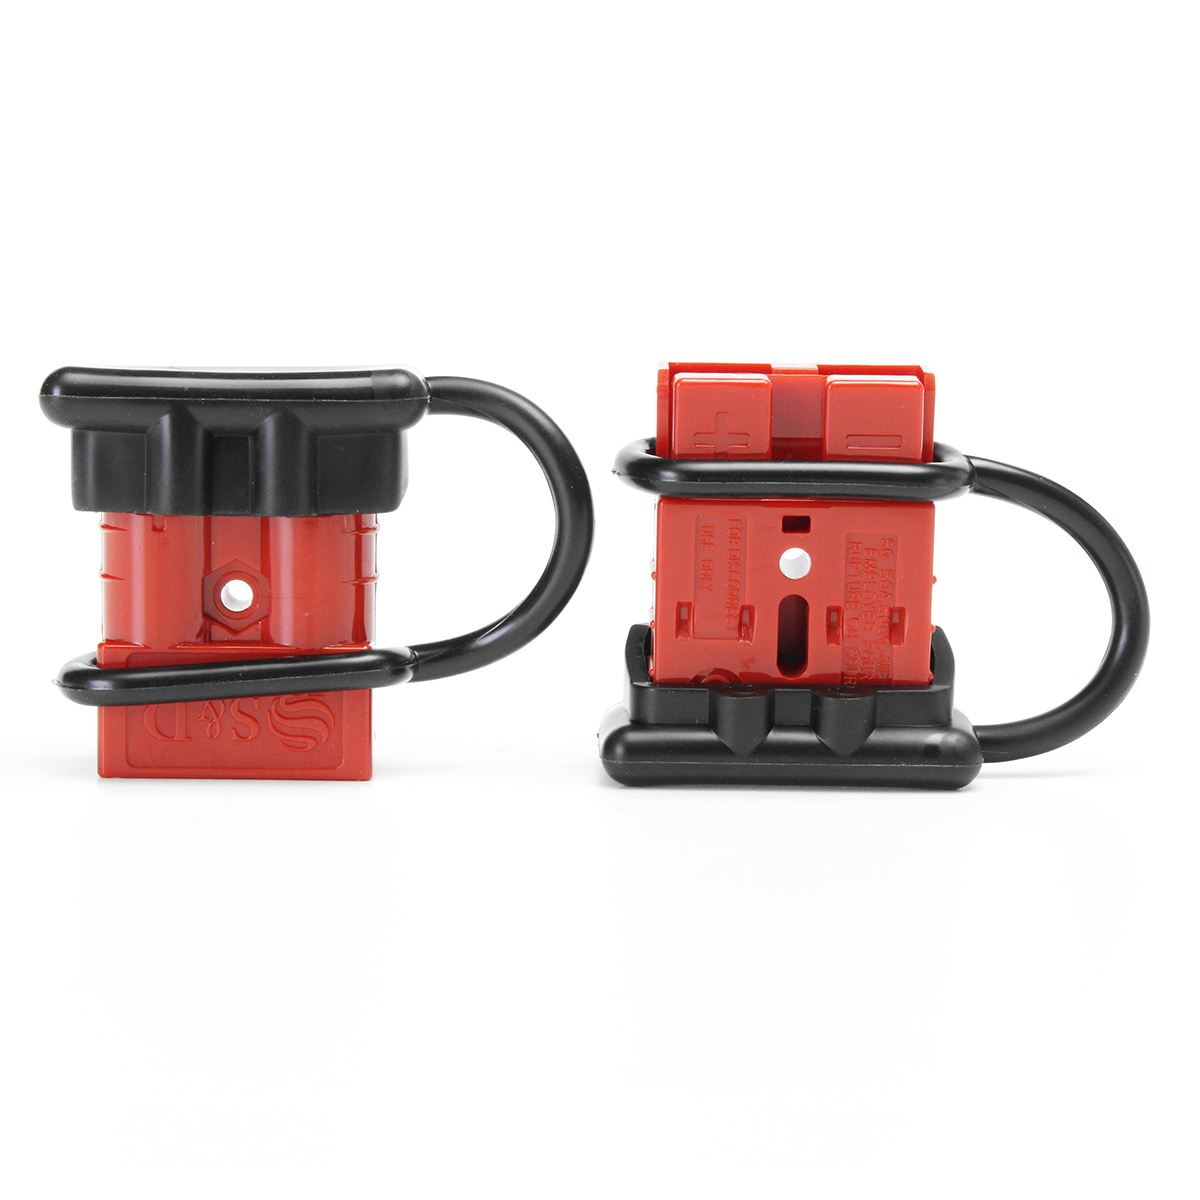 hight resolution of 2pcs 50a 600w battery quick connect disconnect wire harness plug connector kit winch trailer